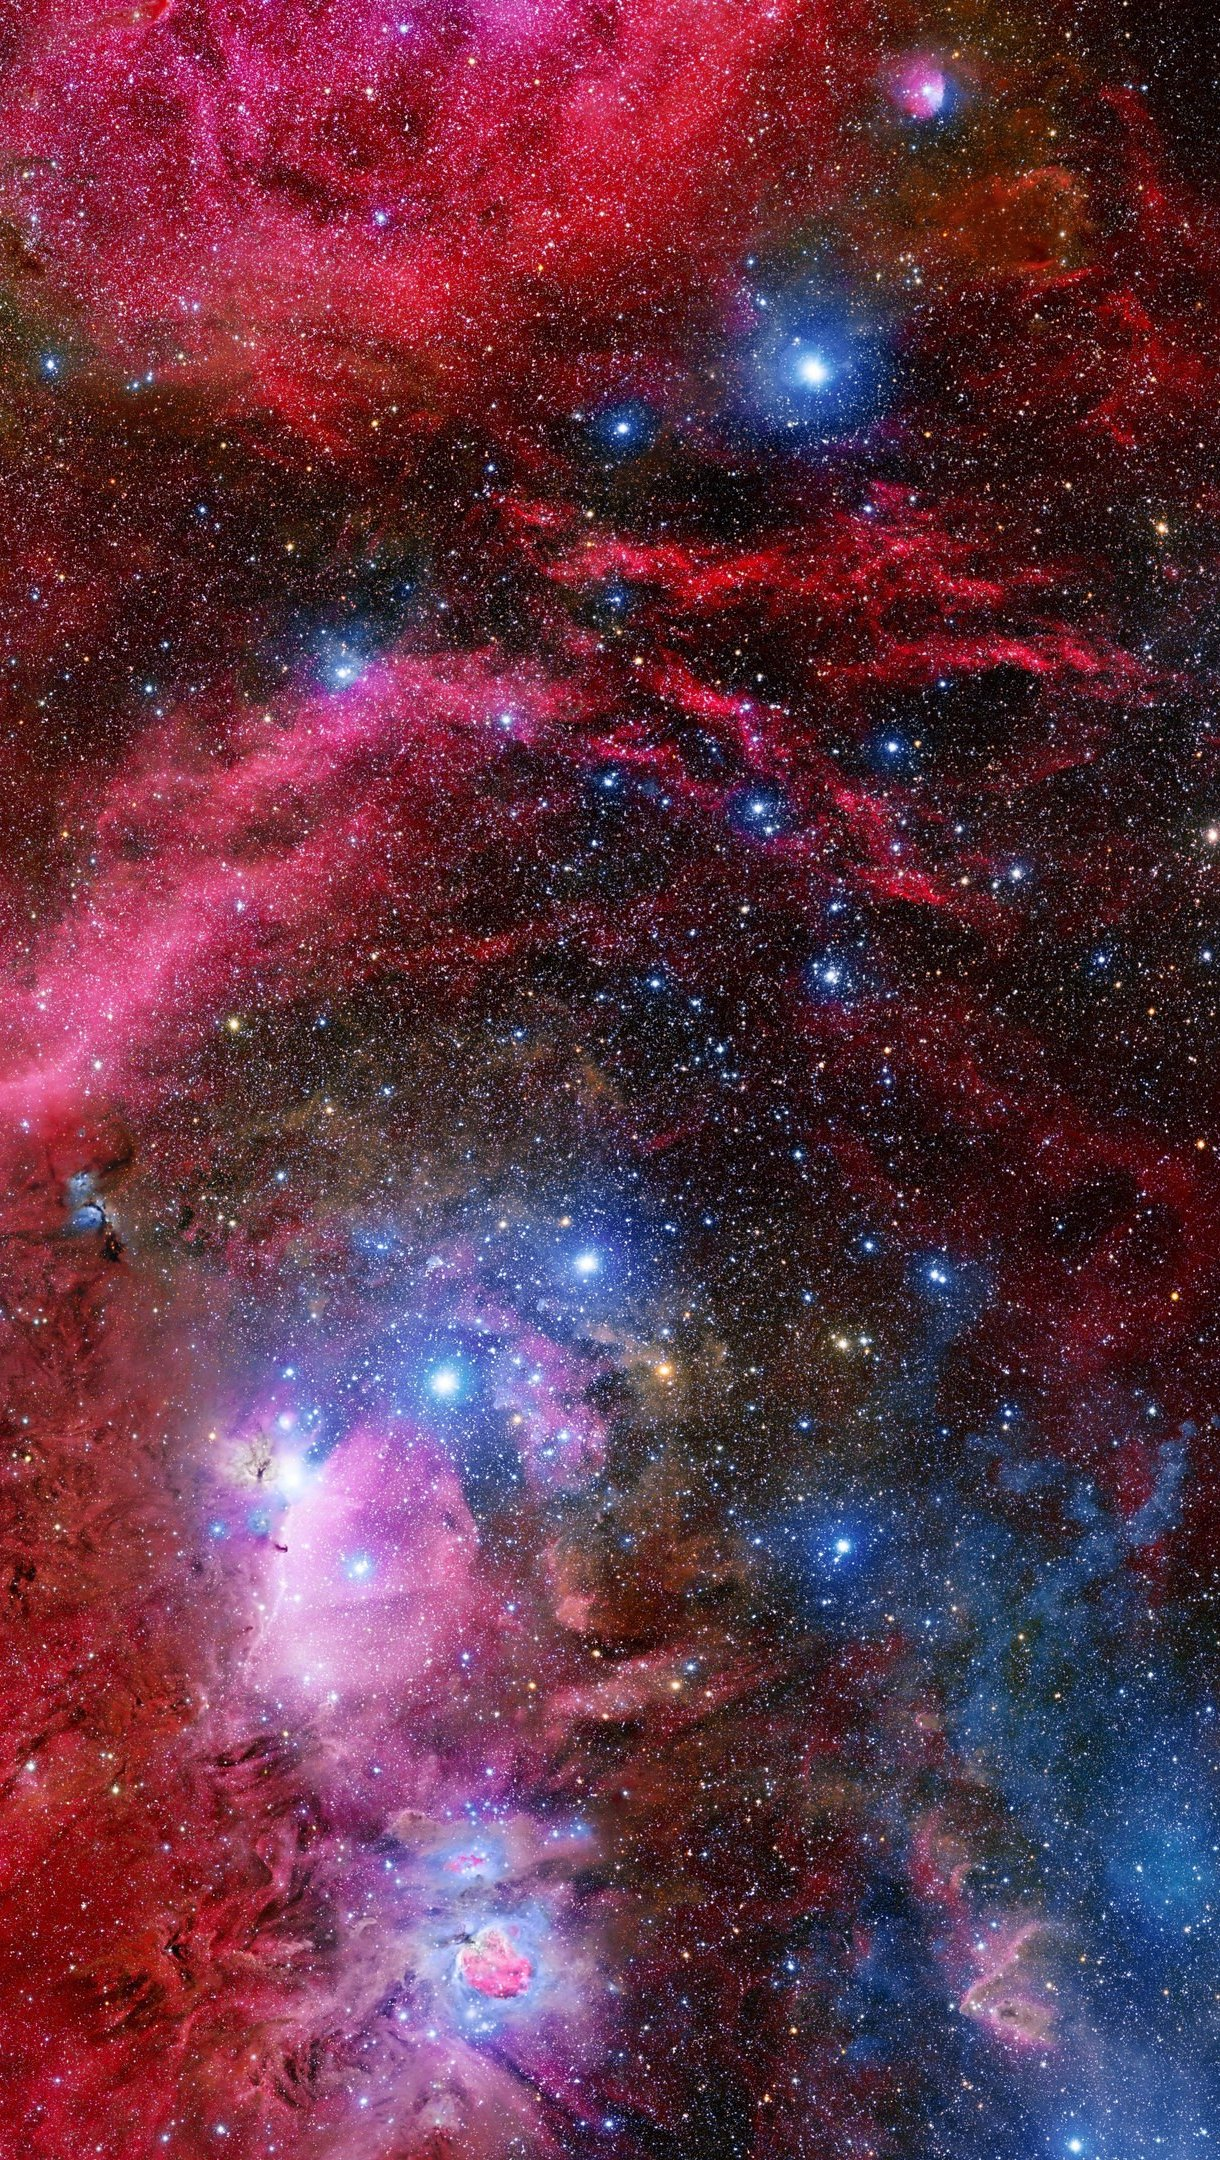 Wallpaper Galaxy and Orion constalation Vertical